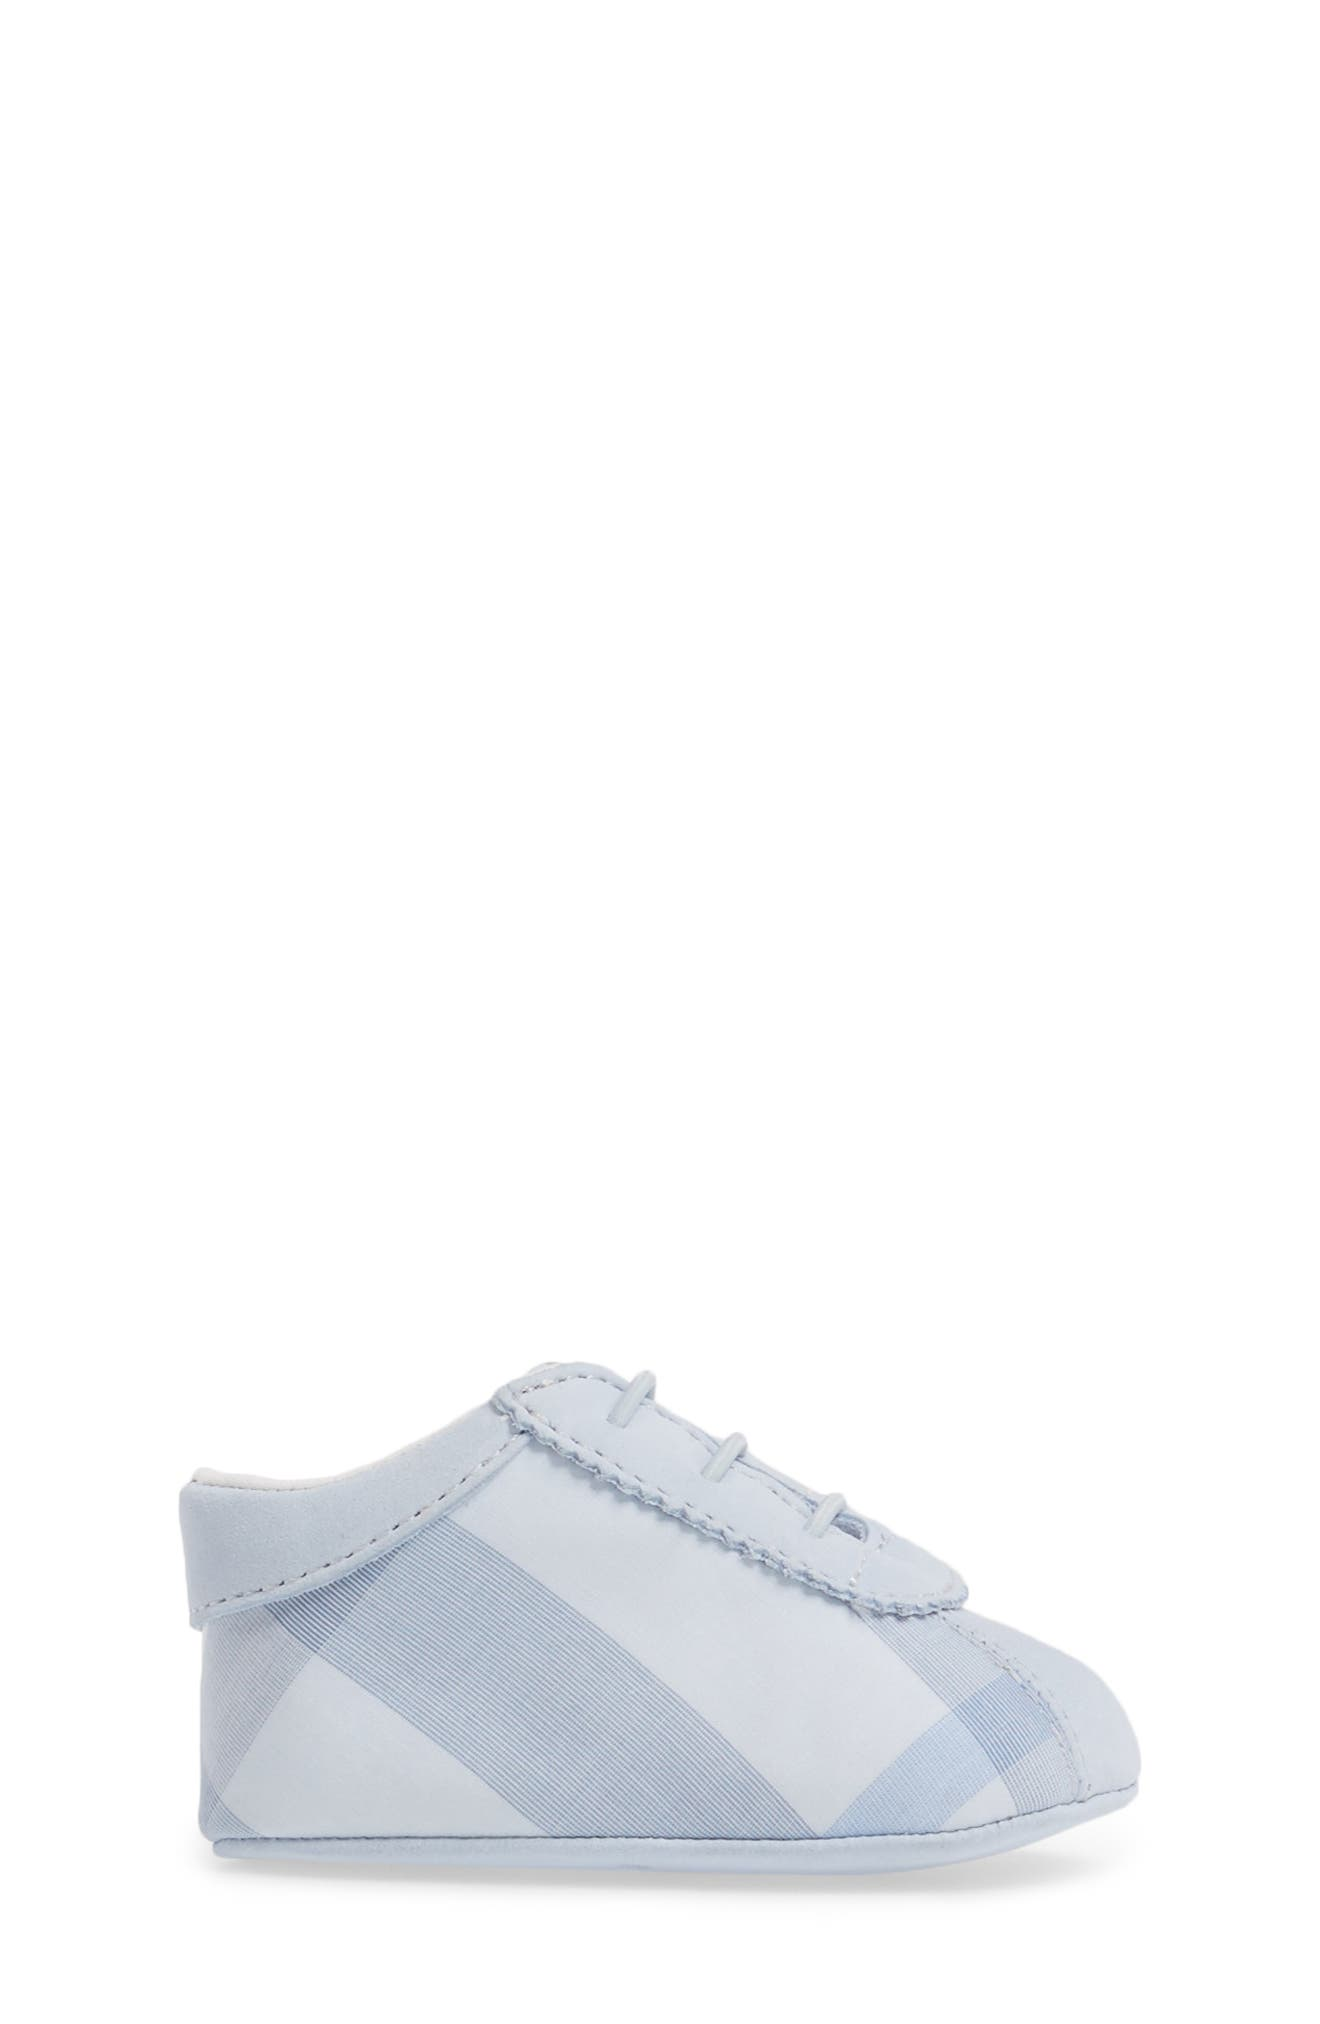 'Bosco' Crib Shoe,                             Alternate thumbnail 3, color,                             Ice Blue